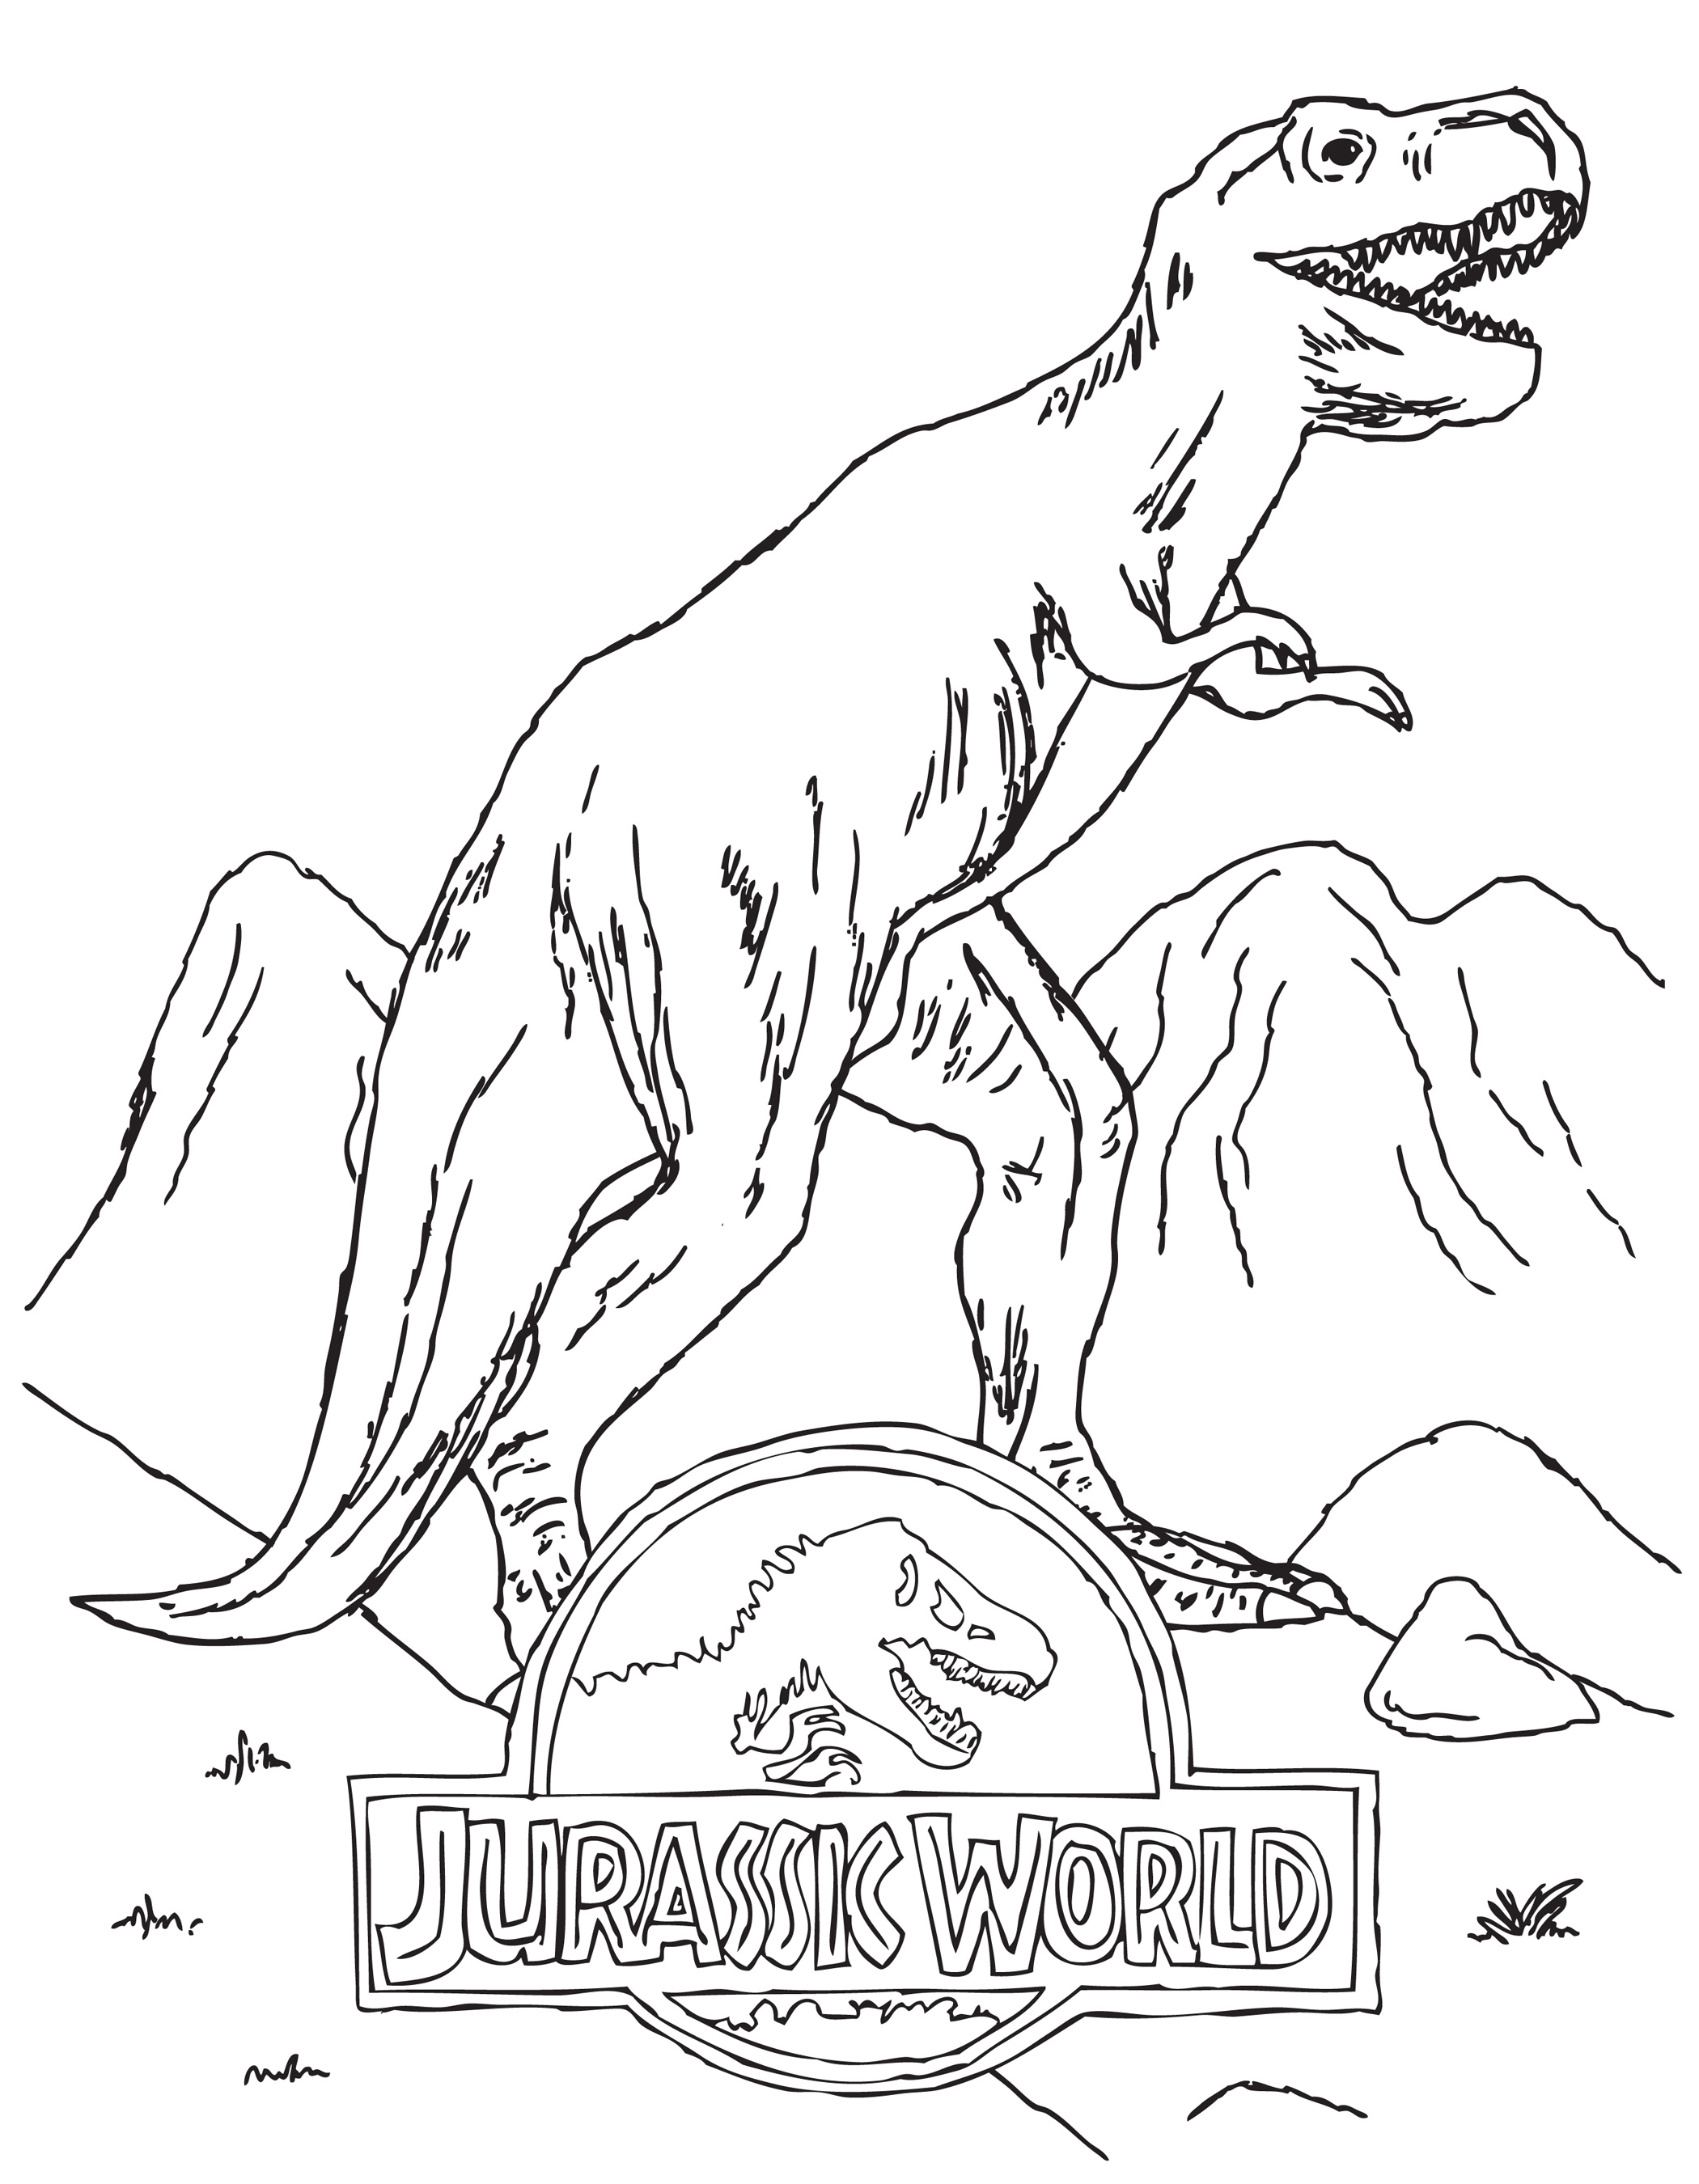 Jurassic World Dinosaur Coloring Pages